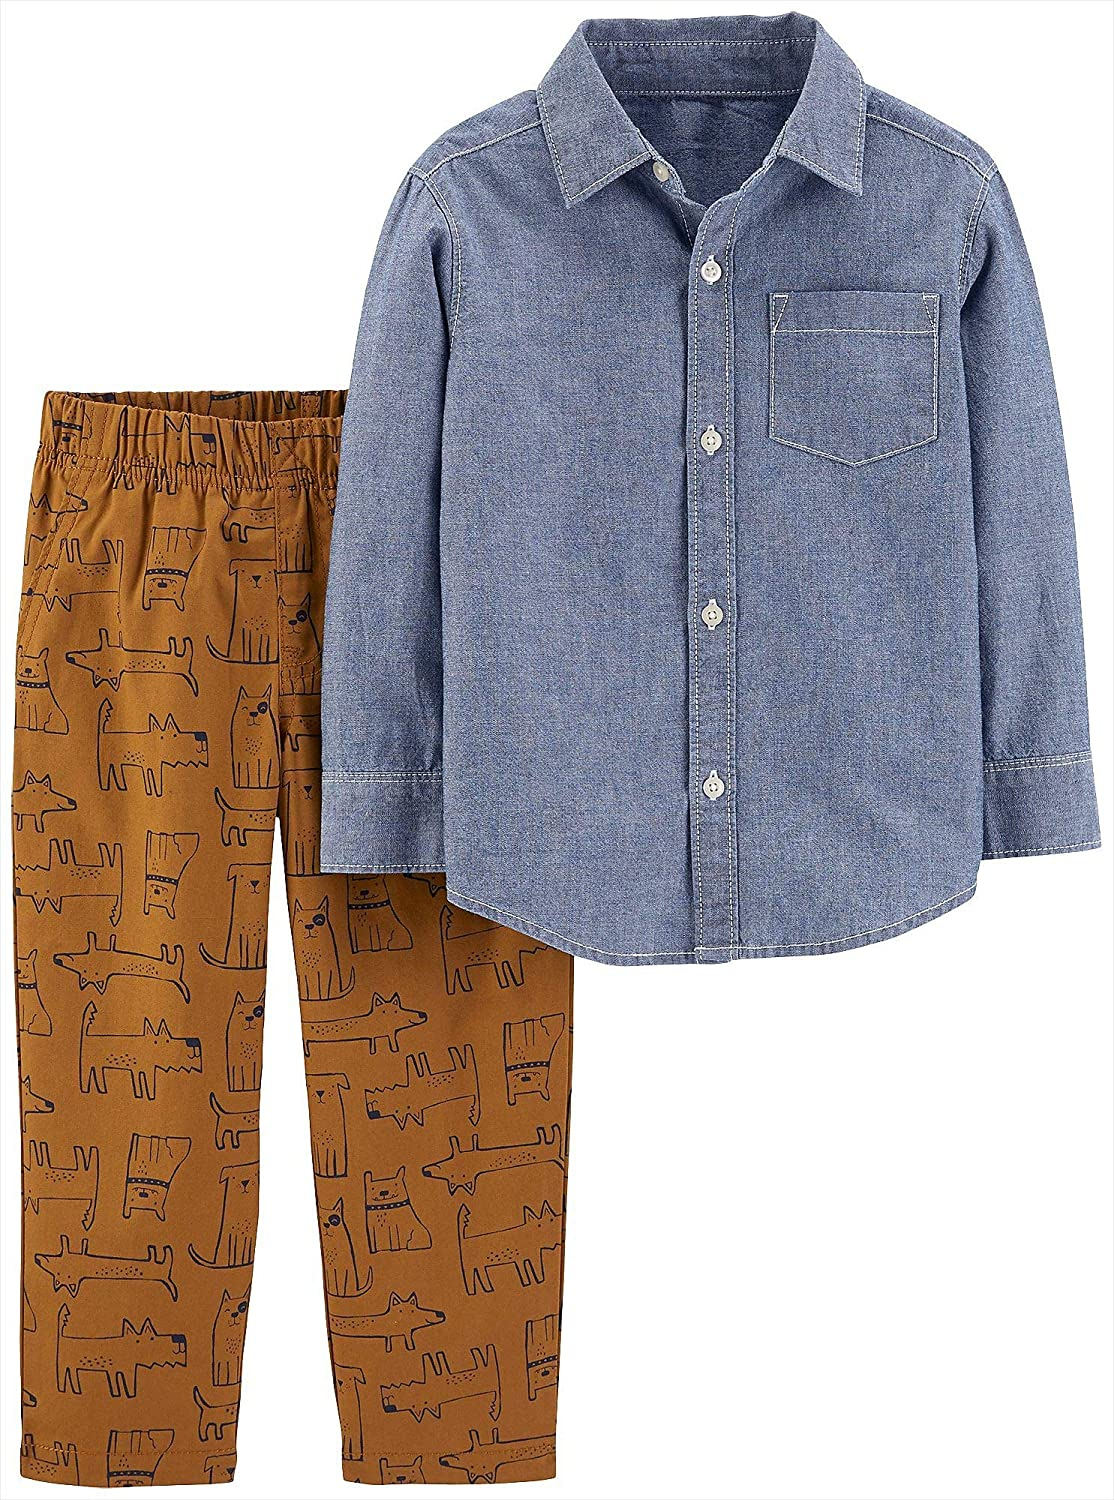 Carter's Baby Boy's 2-Piece Button Front Shirt and Pants Set